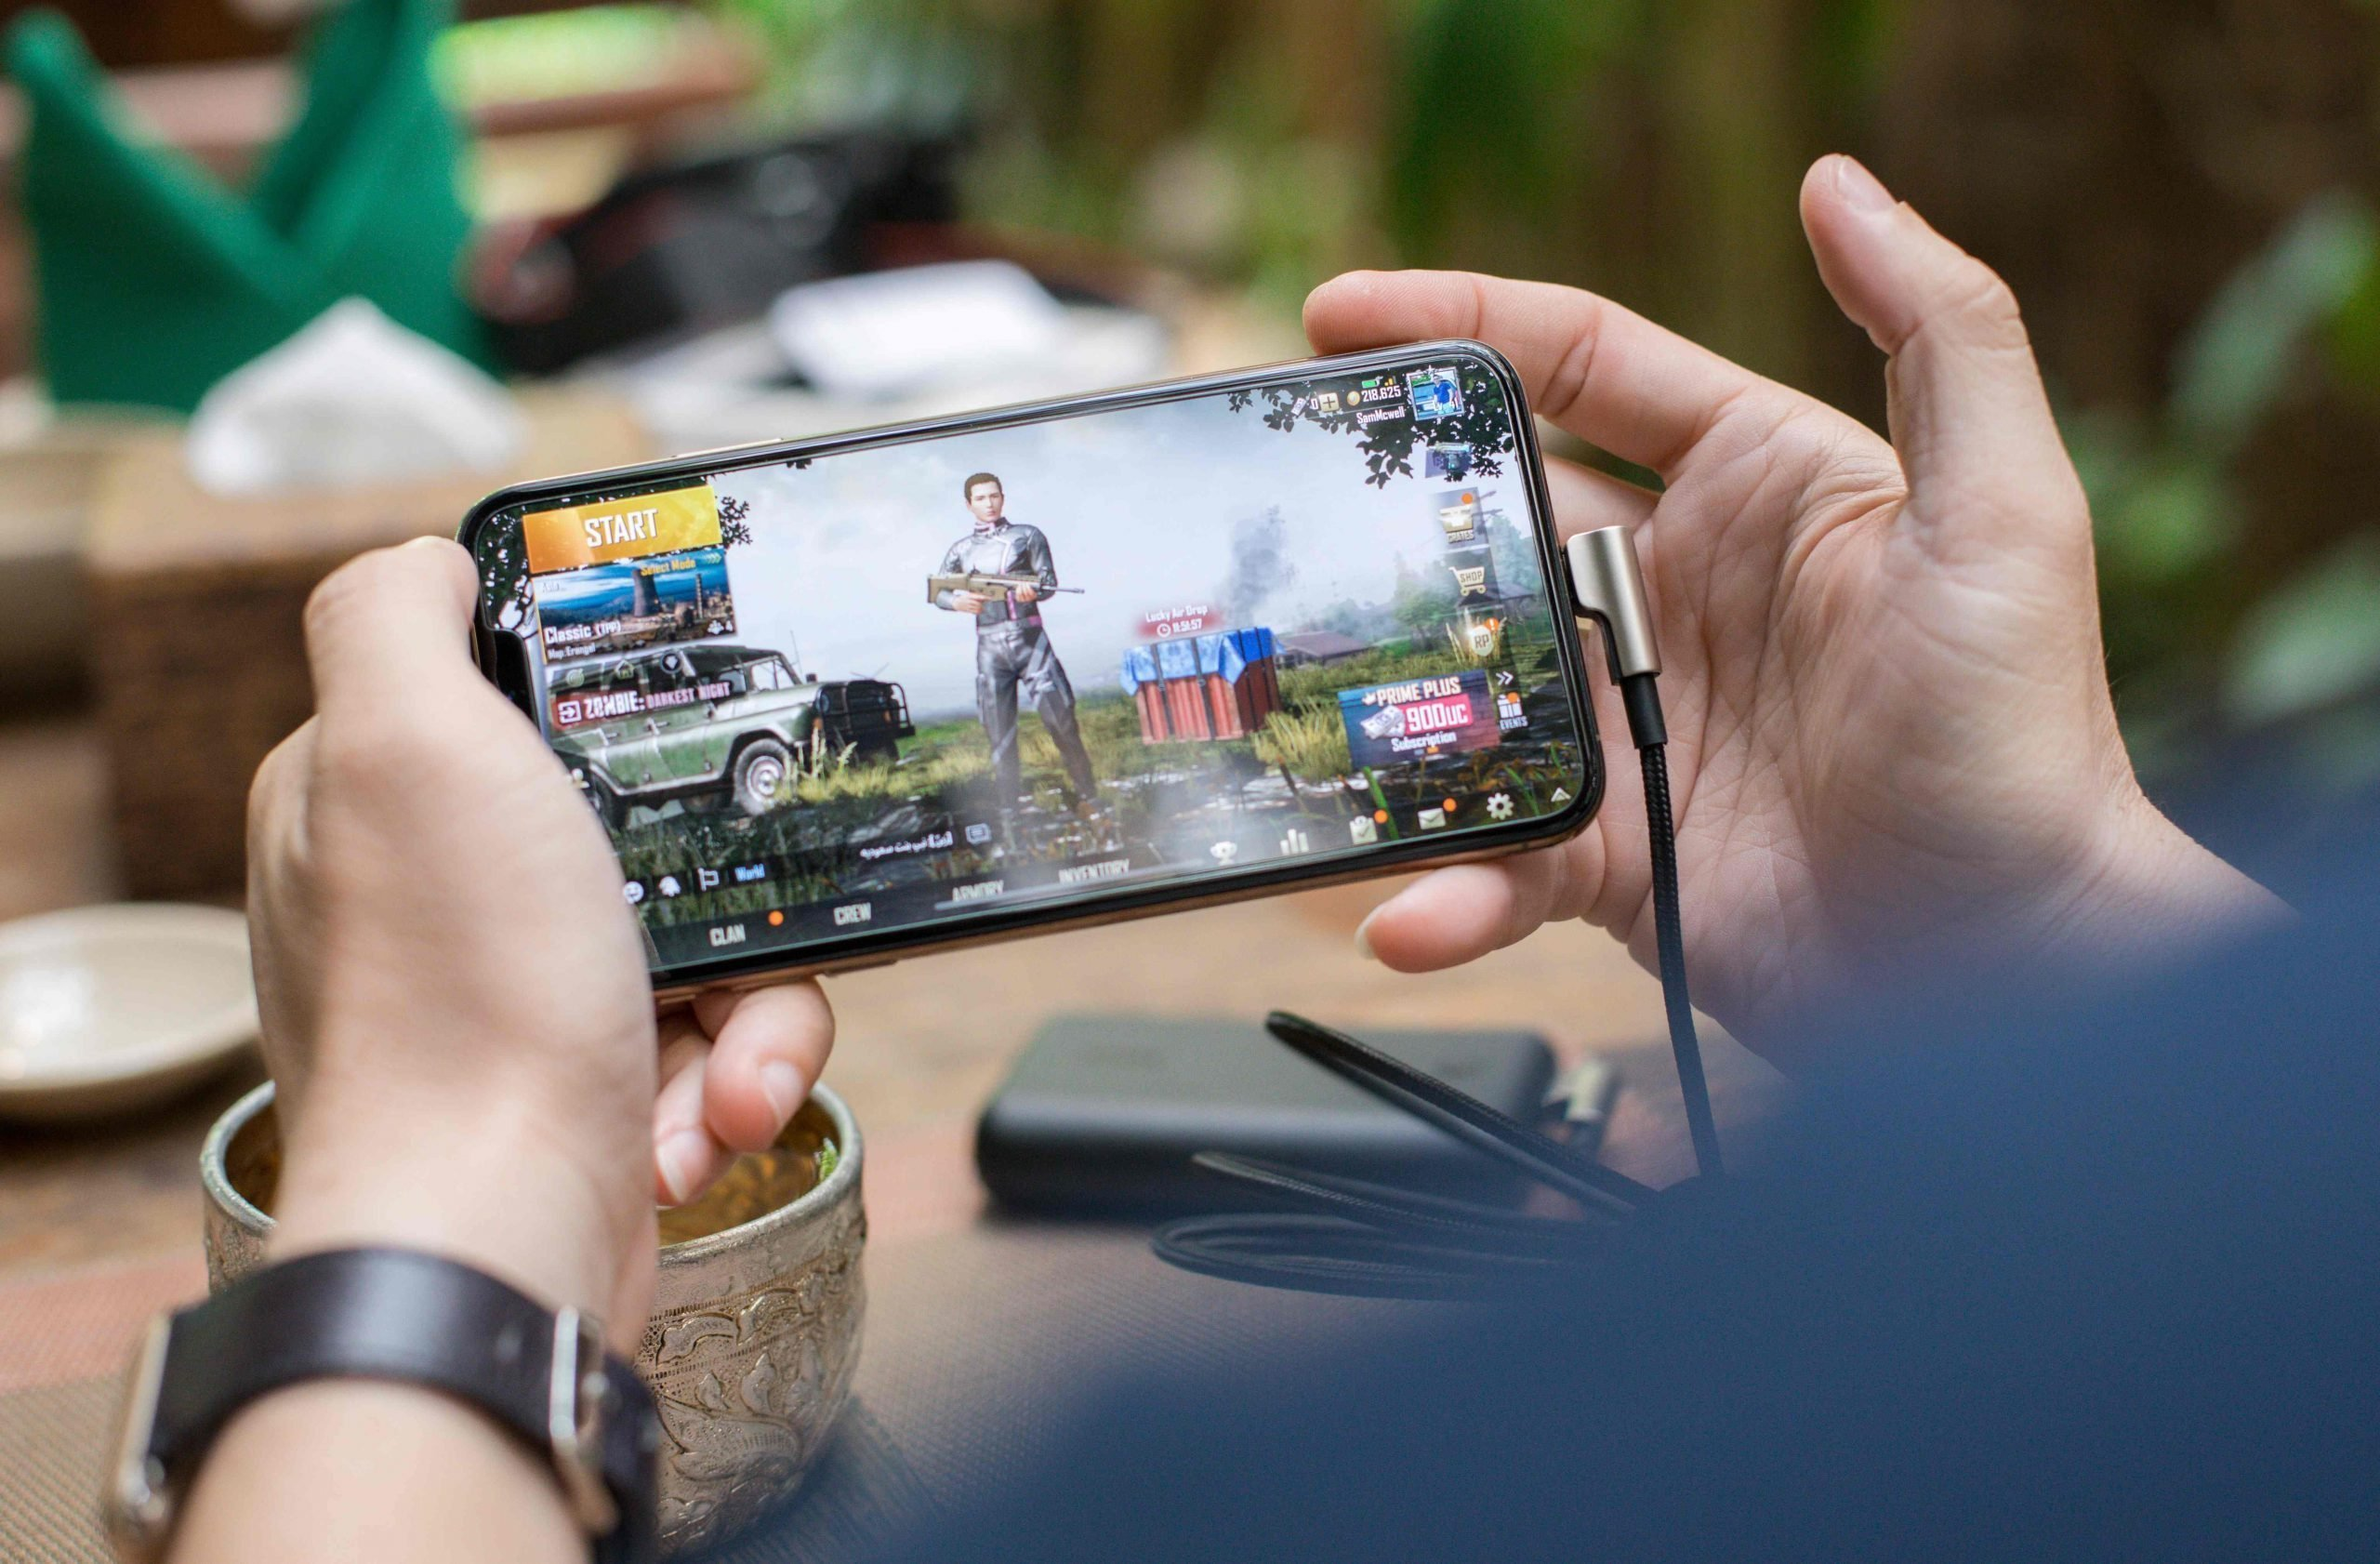 TIPS TO BECOME A PROFESSIONAL PUBG MOBILE PLAYER? It's Easy If You Do It Smart